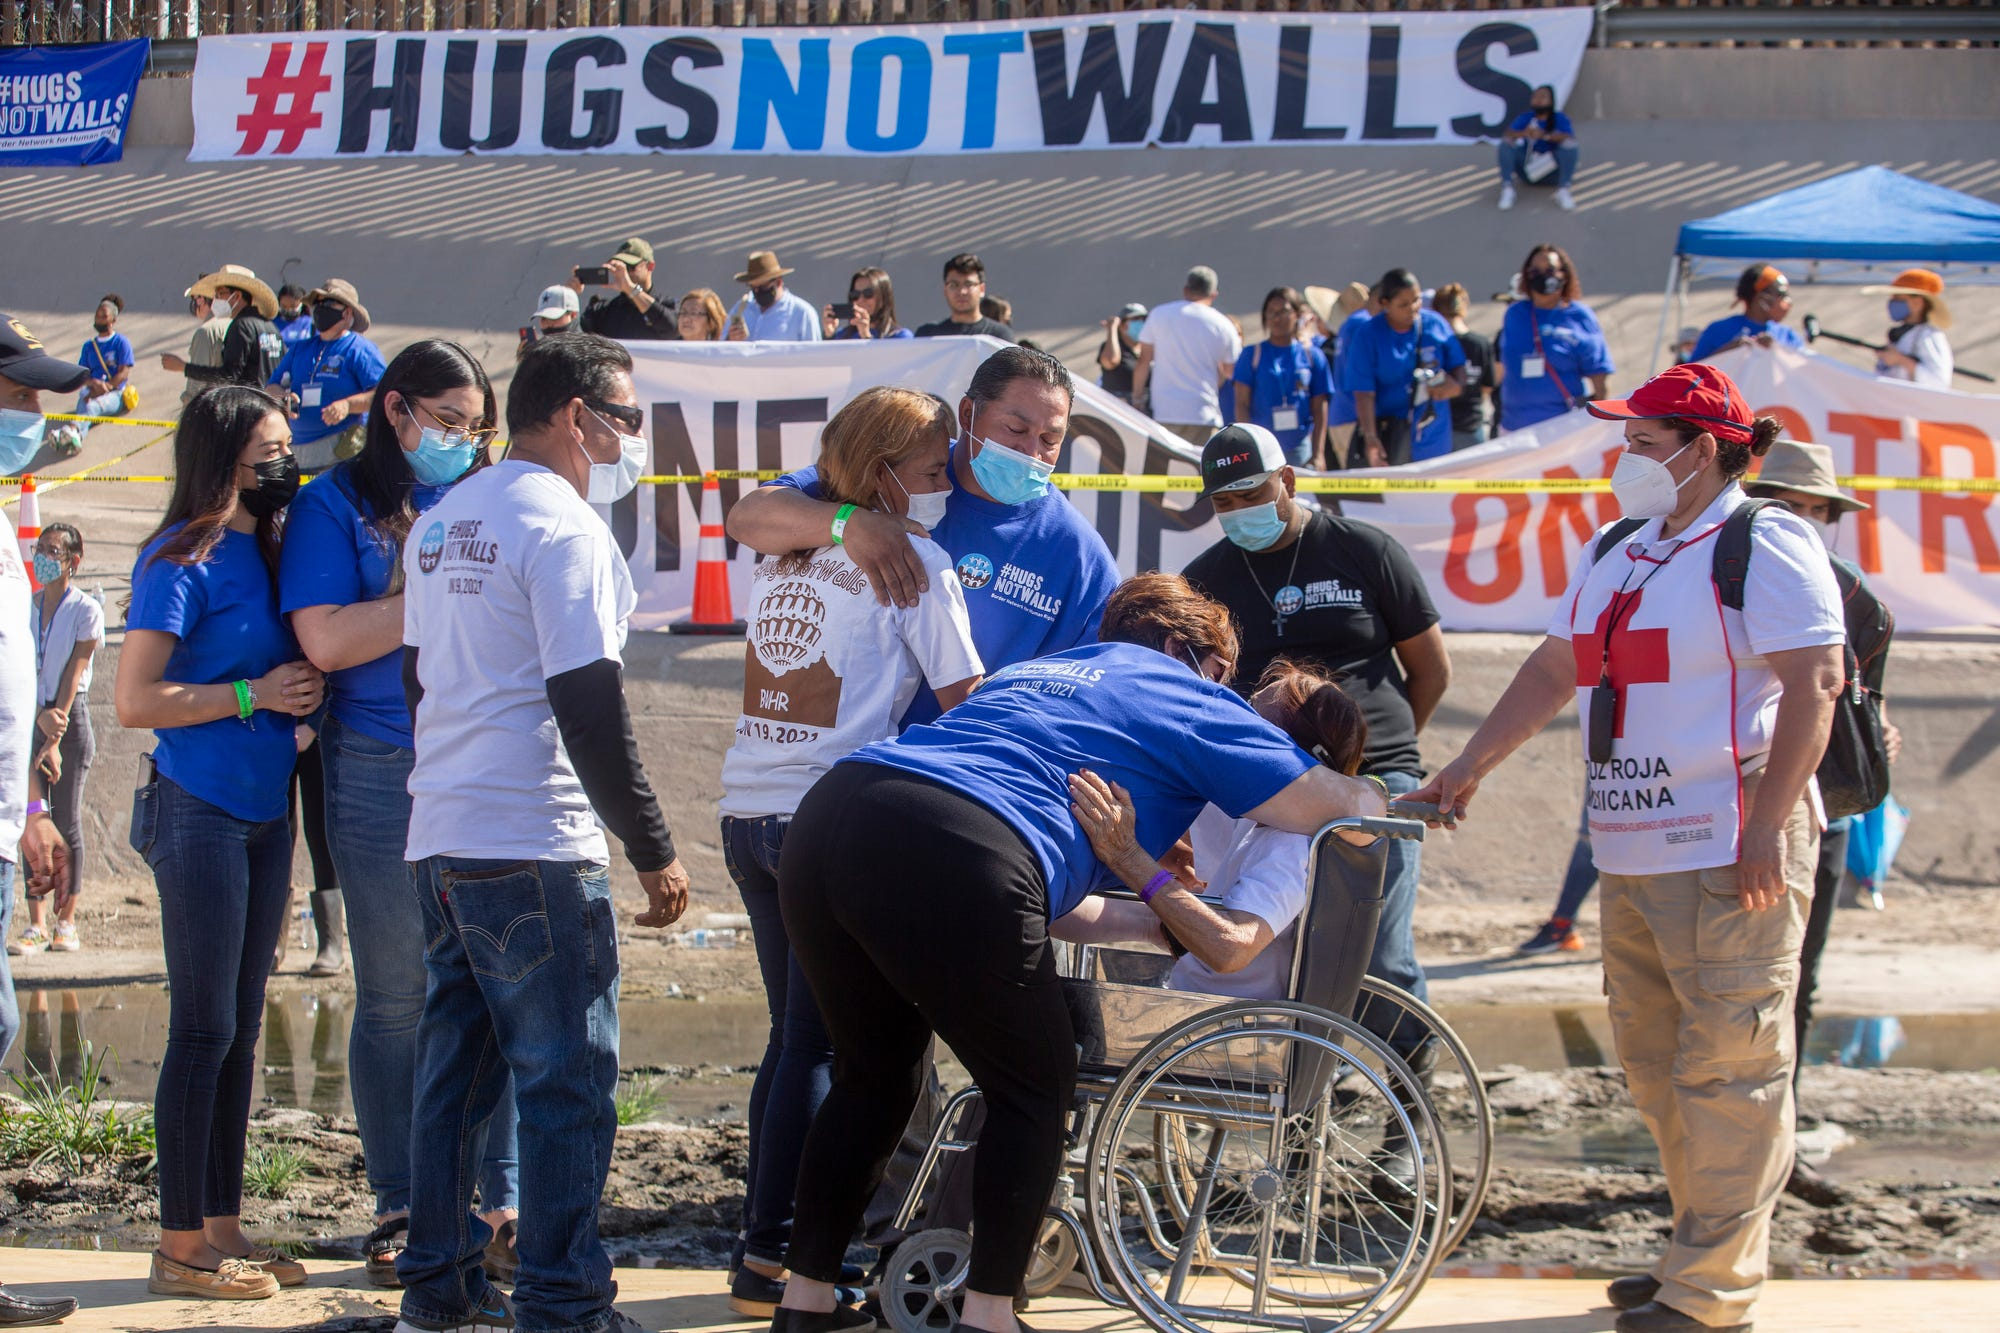 Separated families embrace in Rio Grande between El Paso, Mexico for Hugs Not Walls